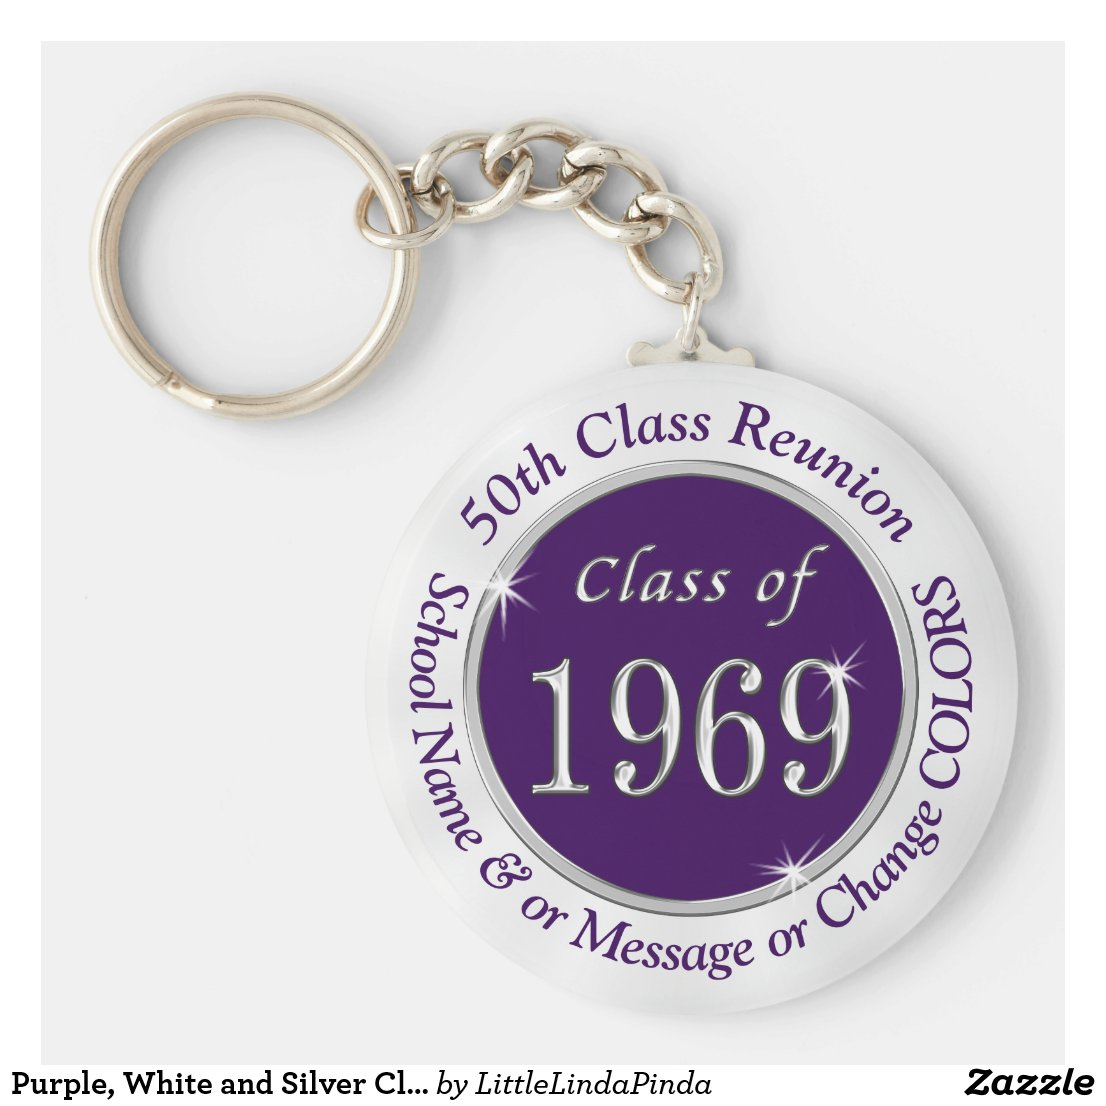 Purple, White and Silver Class of 1969 Gift Ideas Keychain